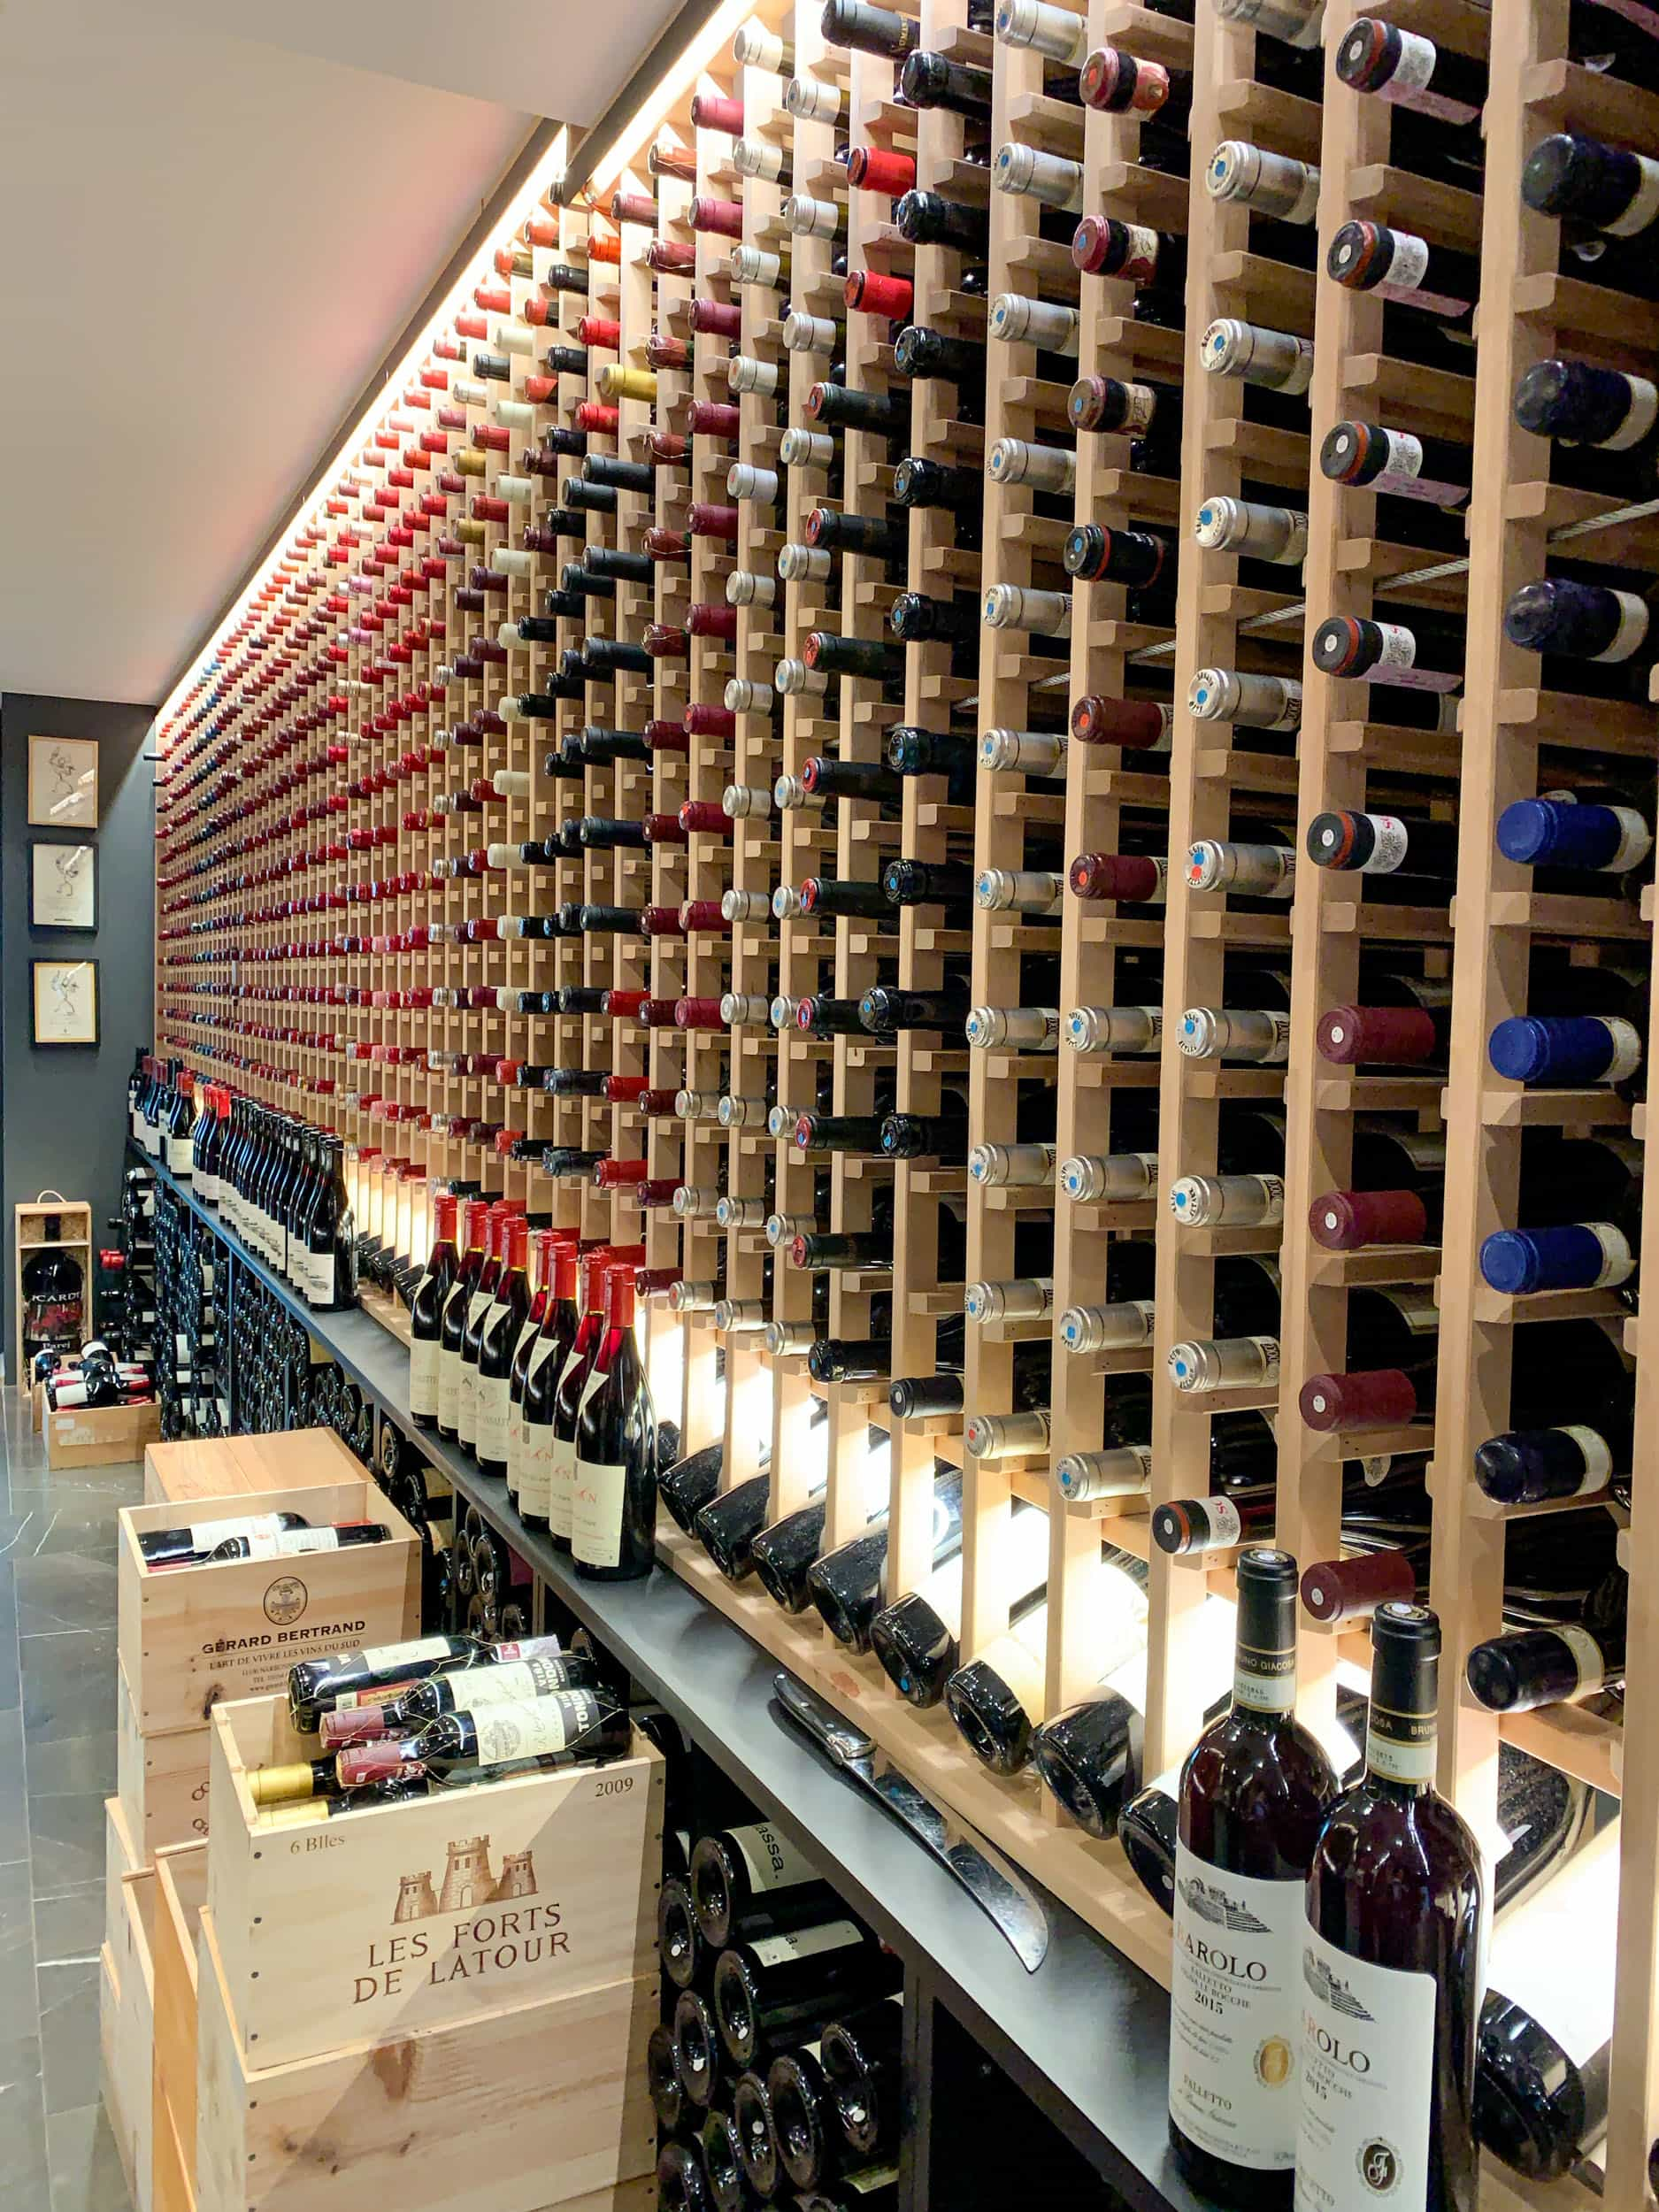 Geranium's wine storage